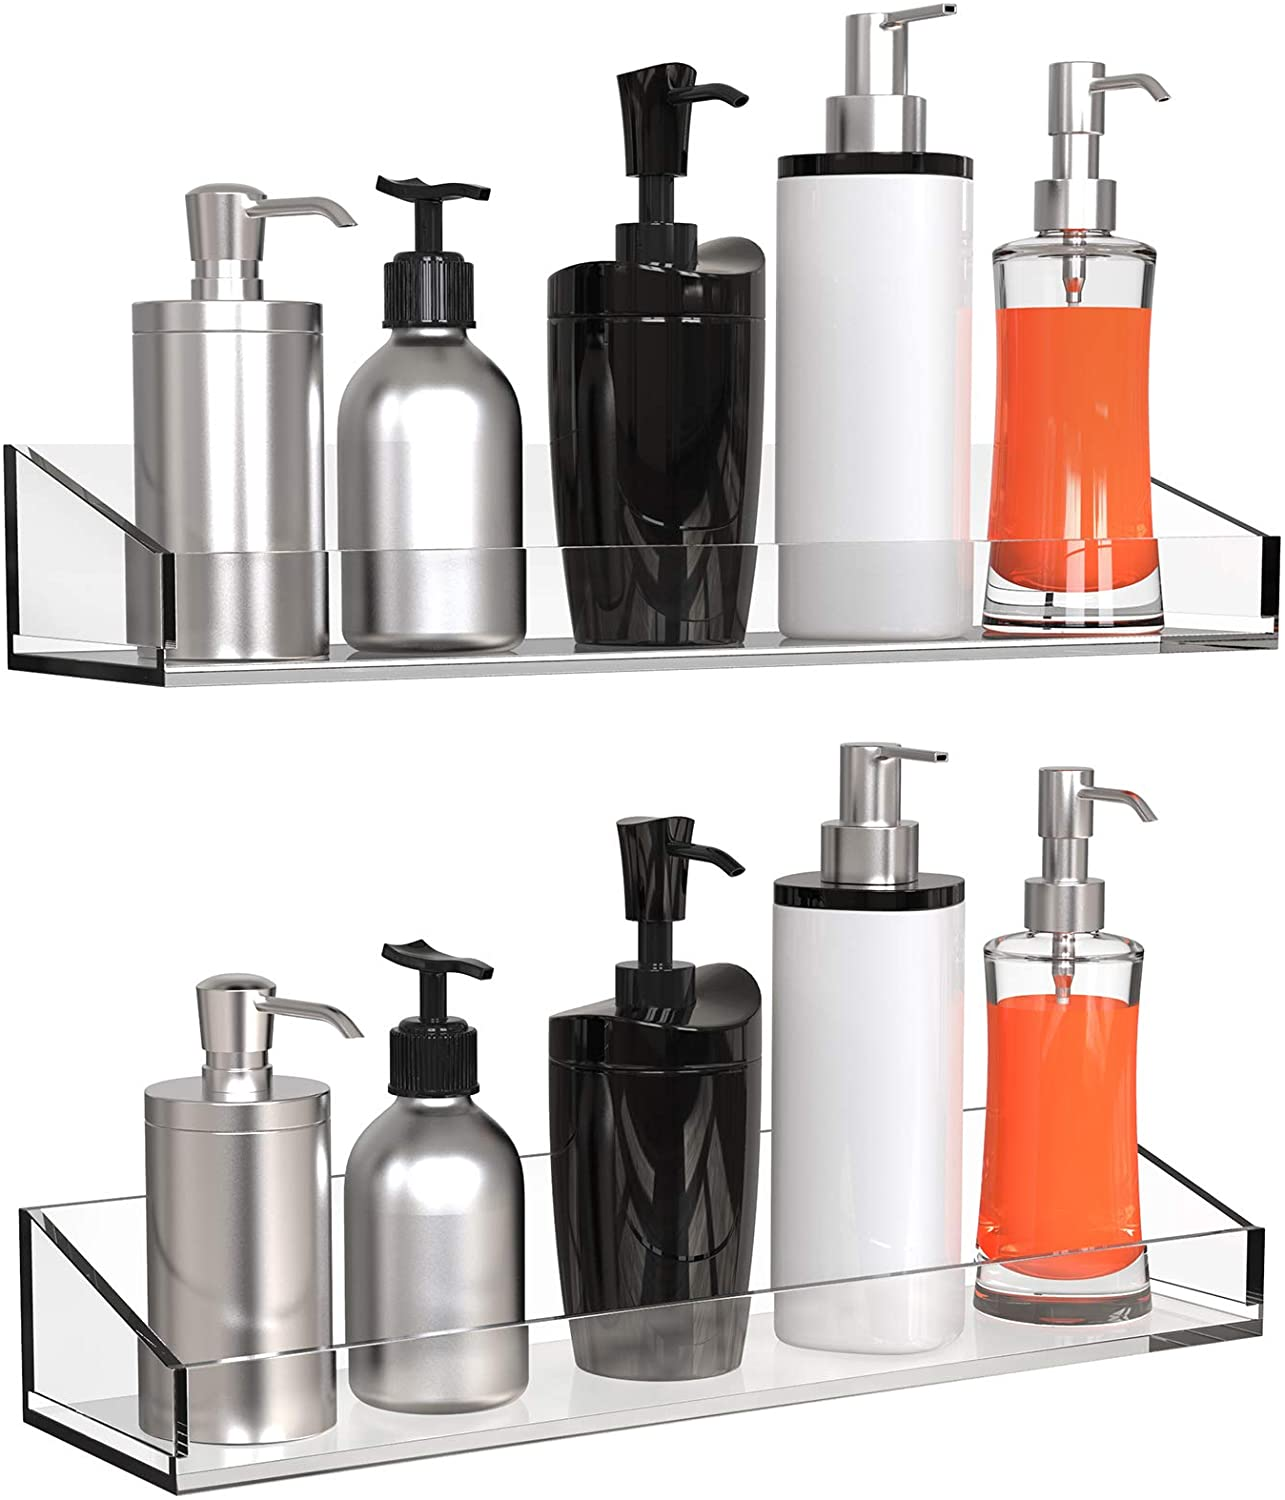 Vdomus Acrylic Sales results No. 1 Bathroom Shelves Wall Drilling no Thick Mounted Department store